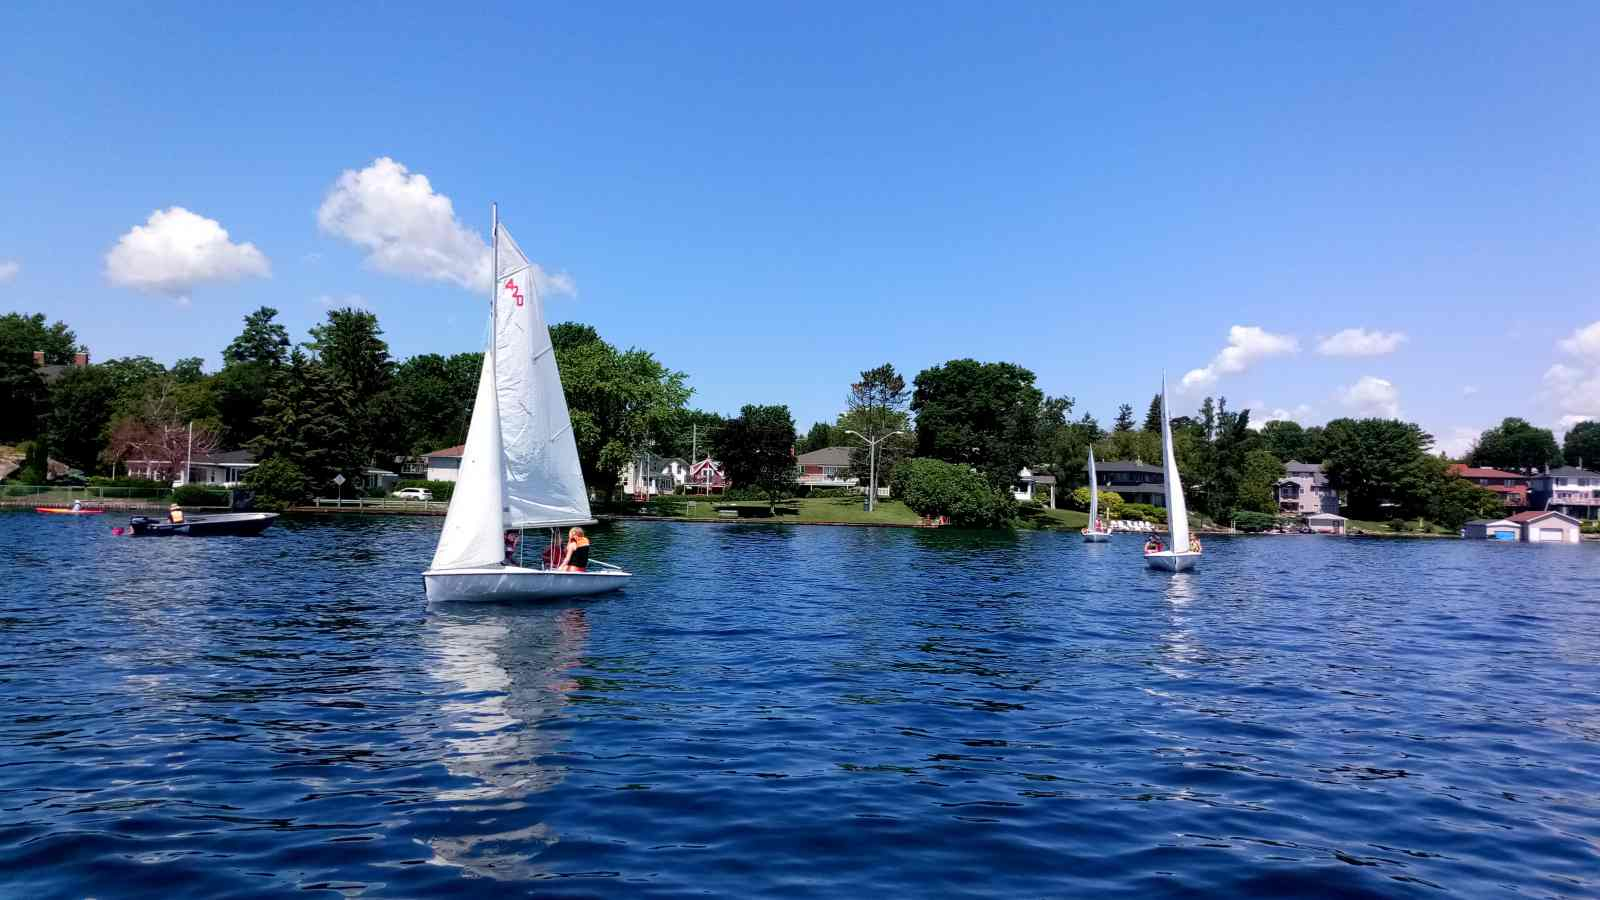 Brockville Yacht Club Sailing School 2017 fun water st.lawrence byc.jpg